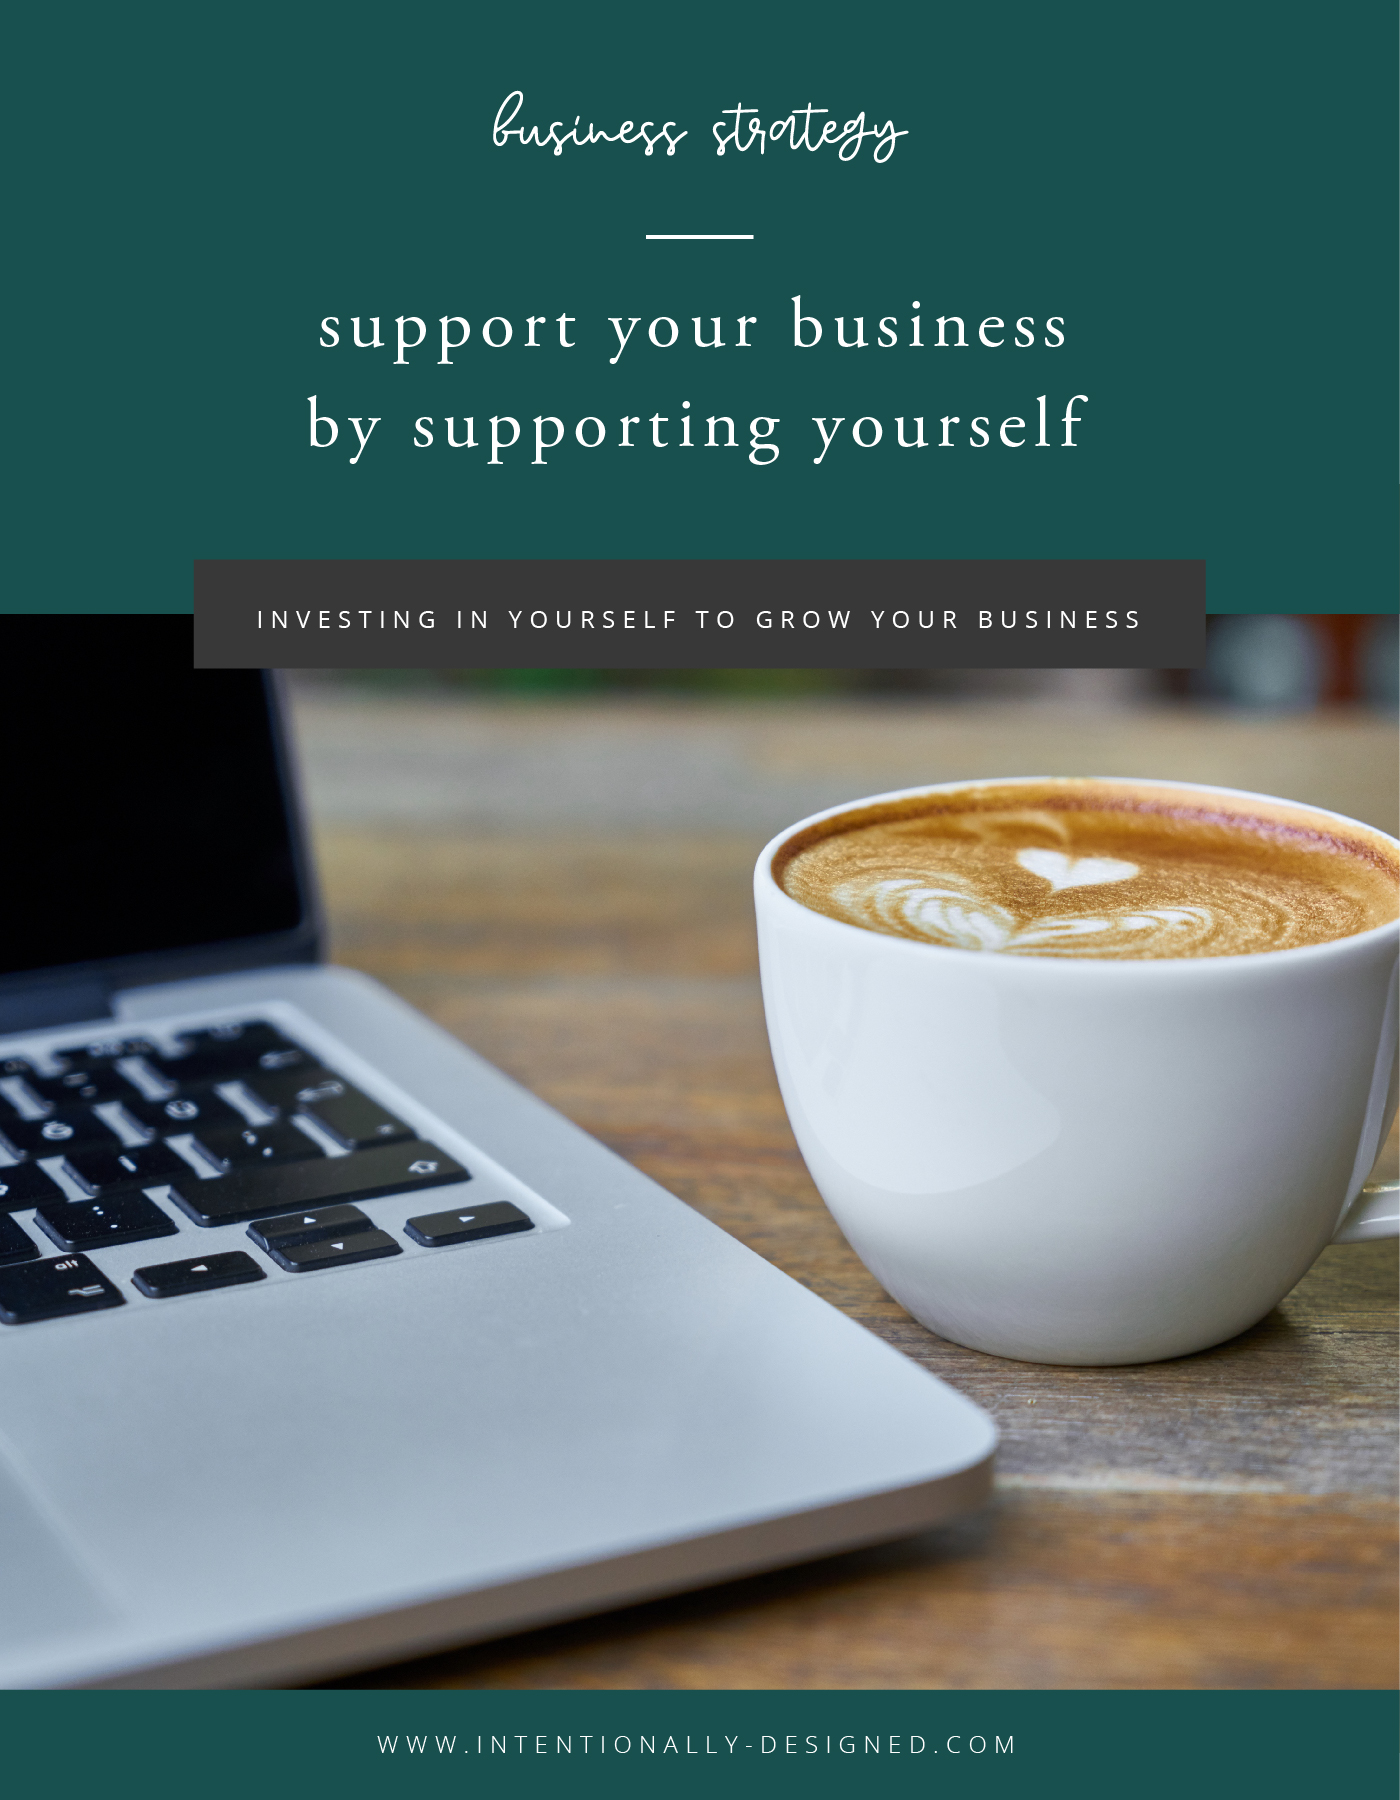 supporting yourself as a business owner